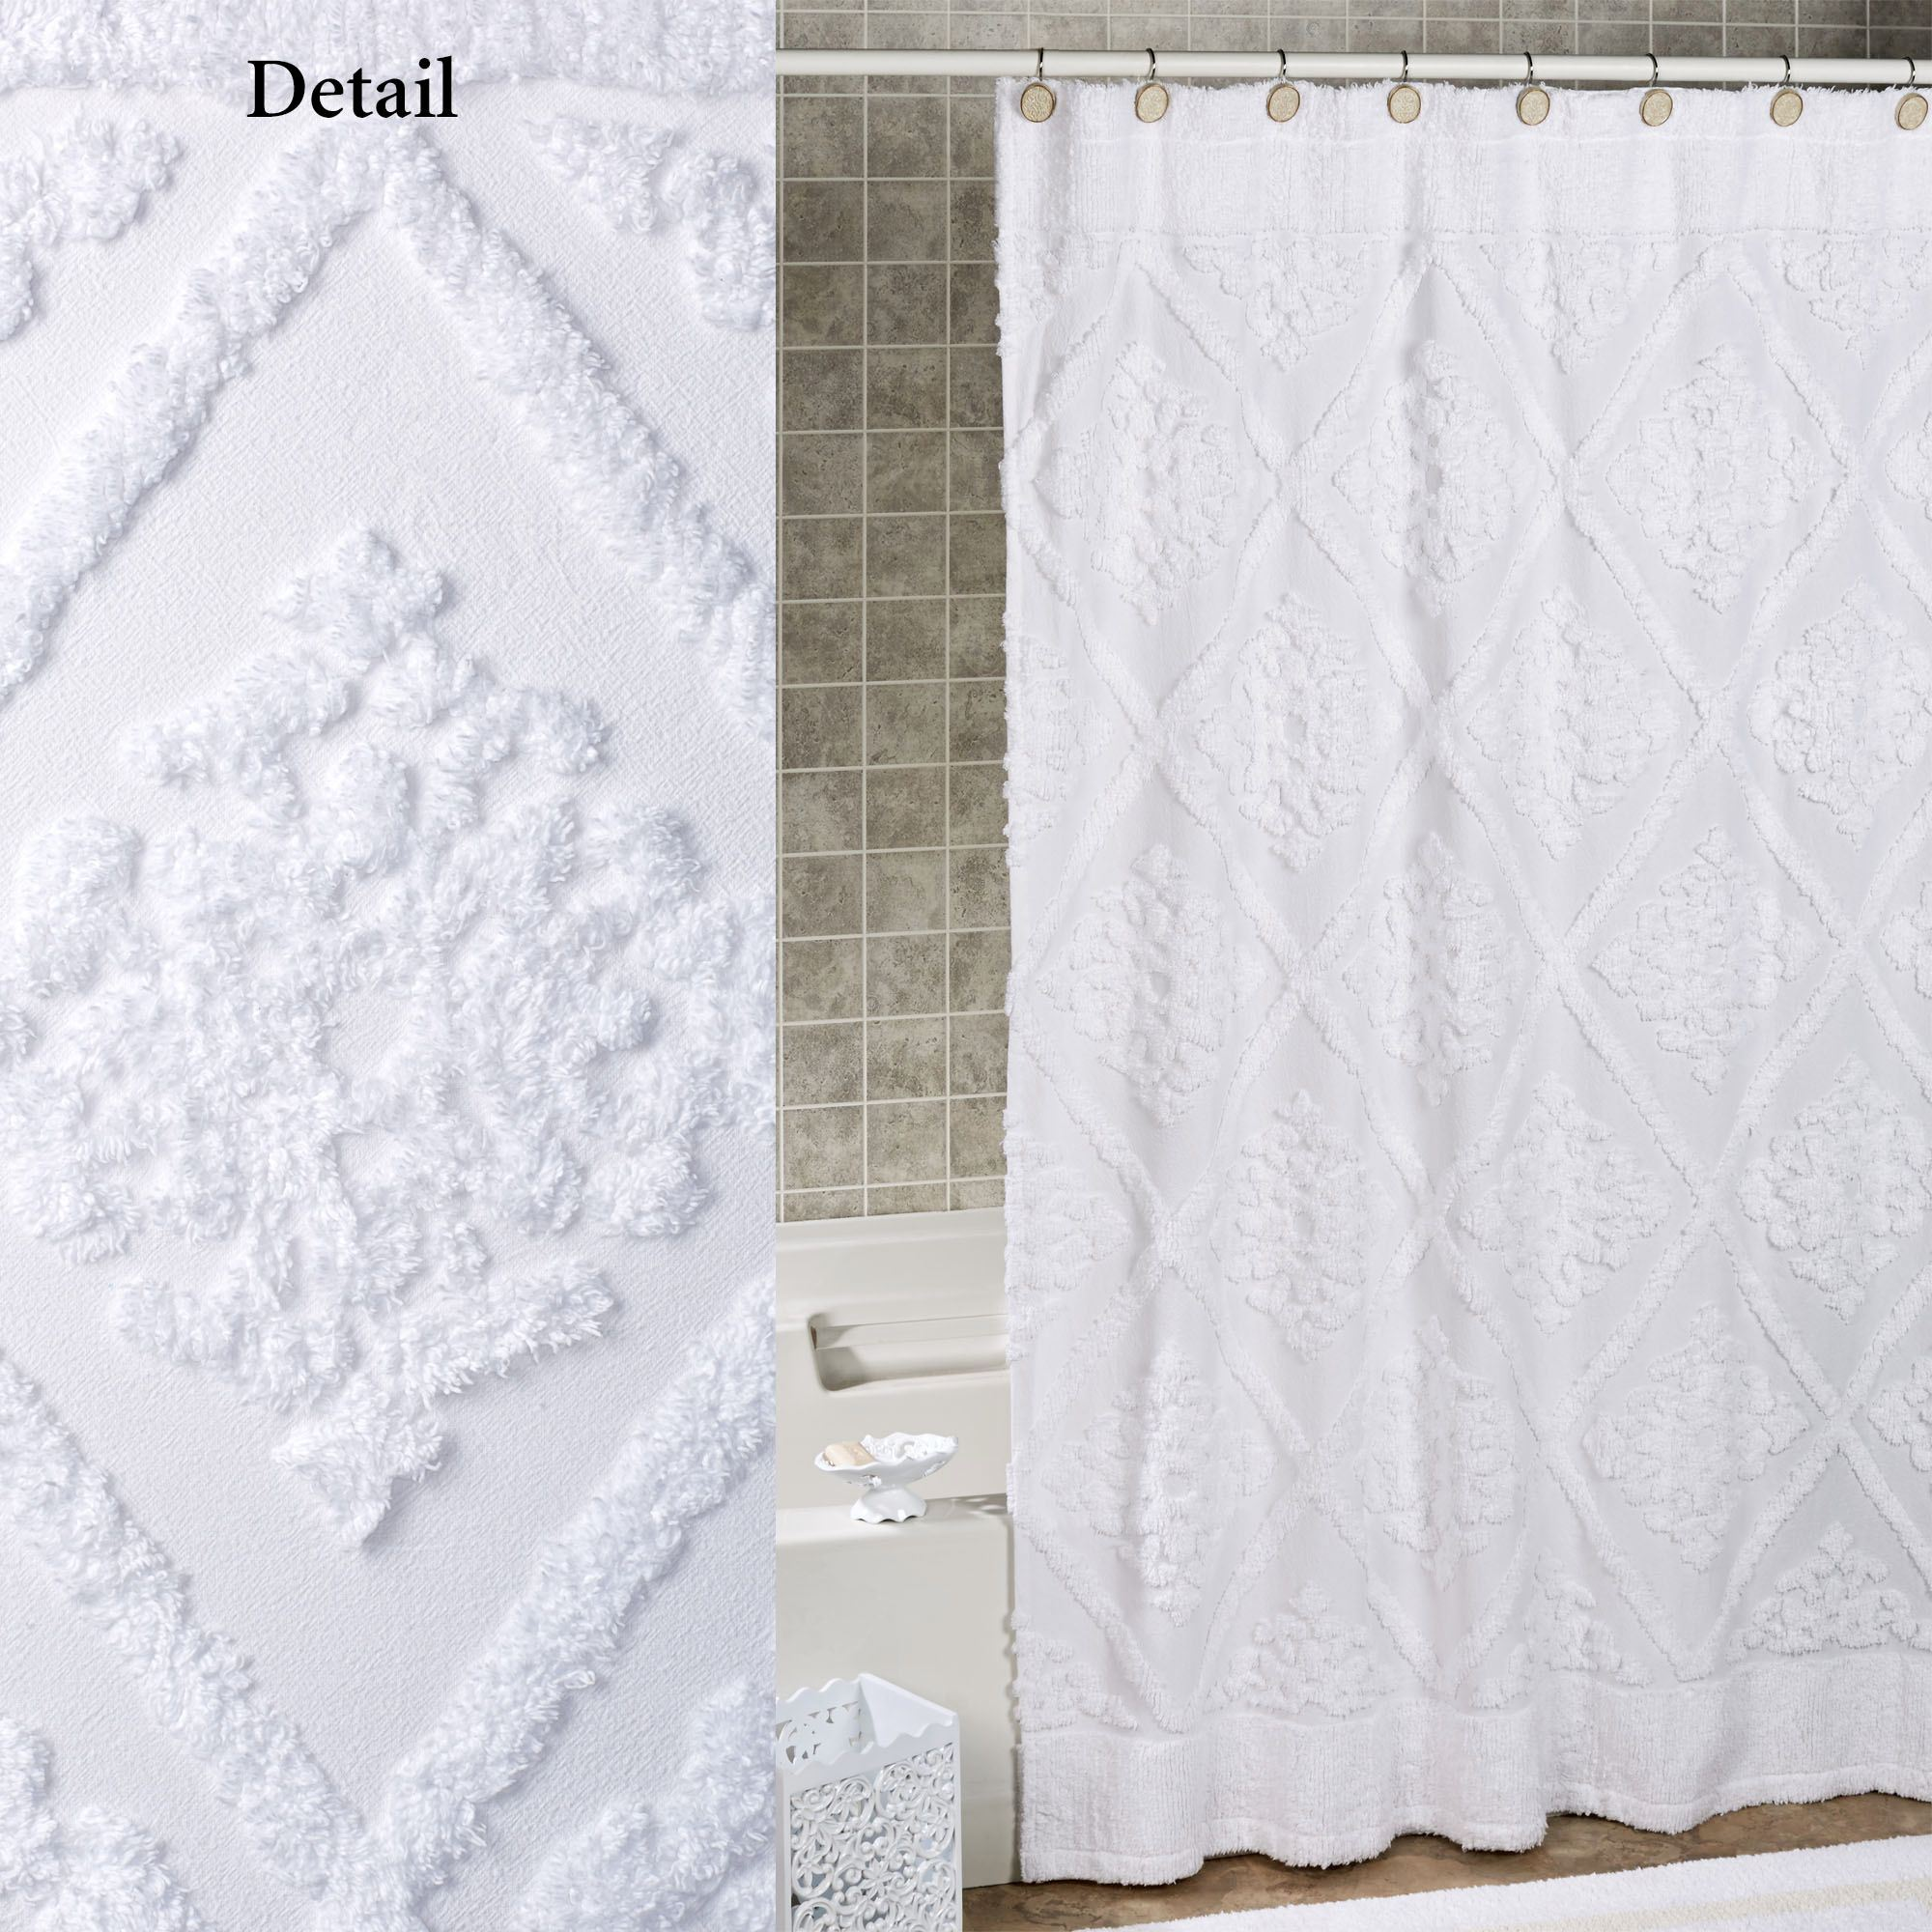 Belle White Cotton Chenille Shower Curtain